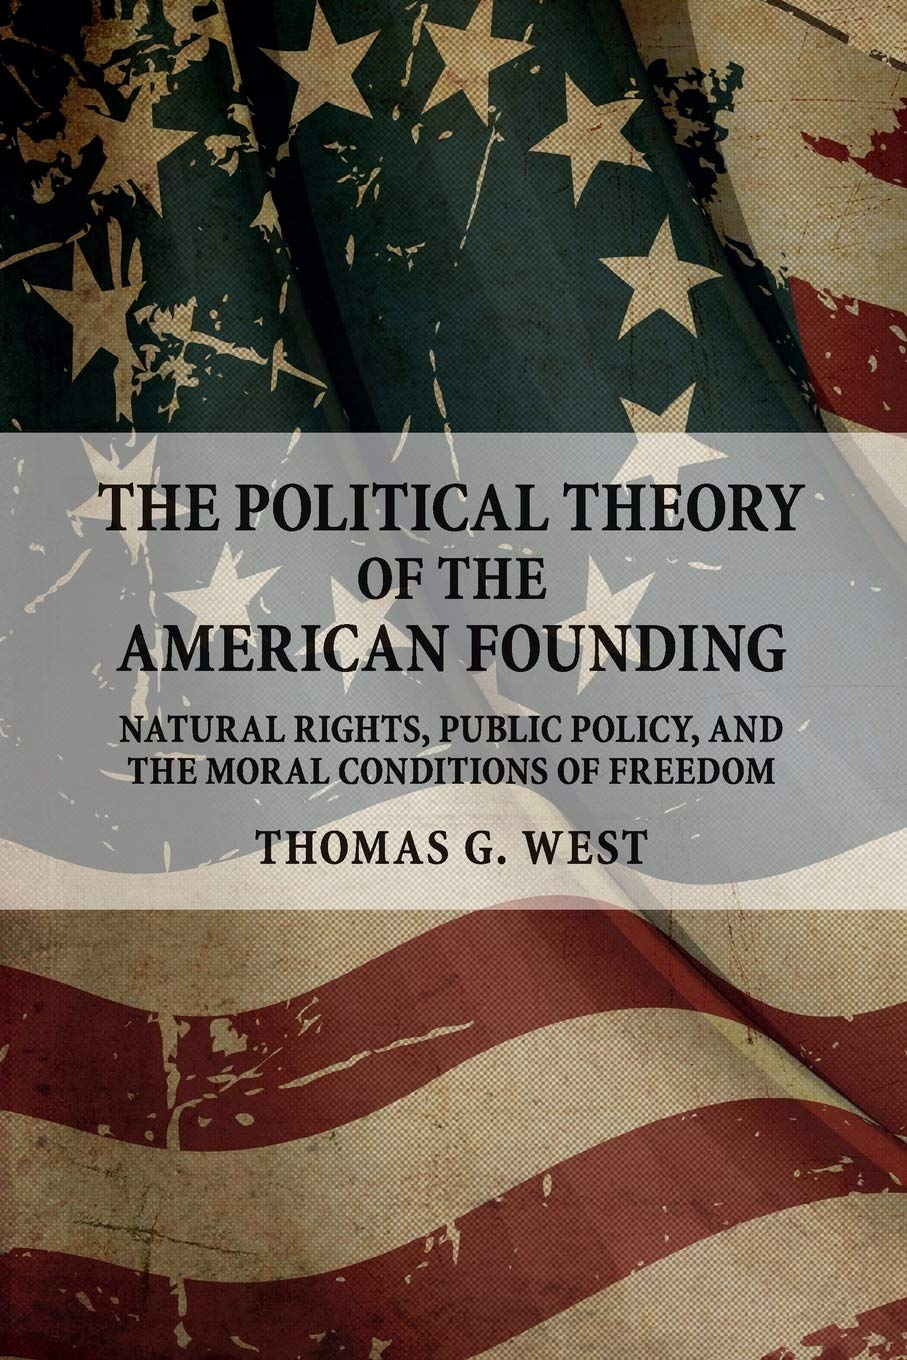 Image result for tom west political theory of the american founding